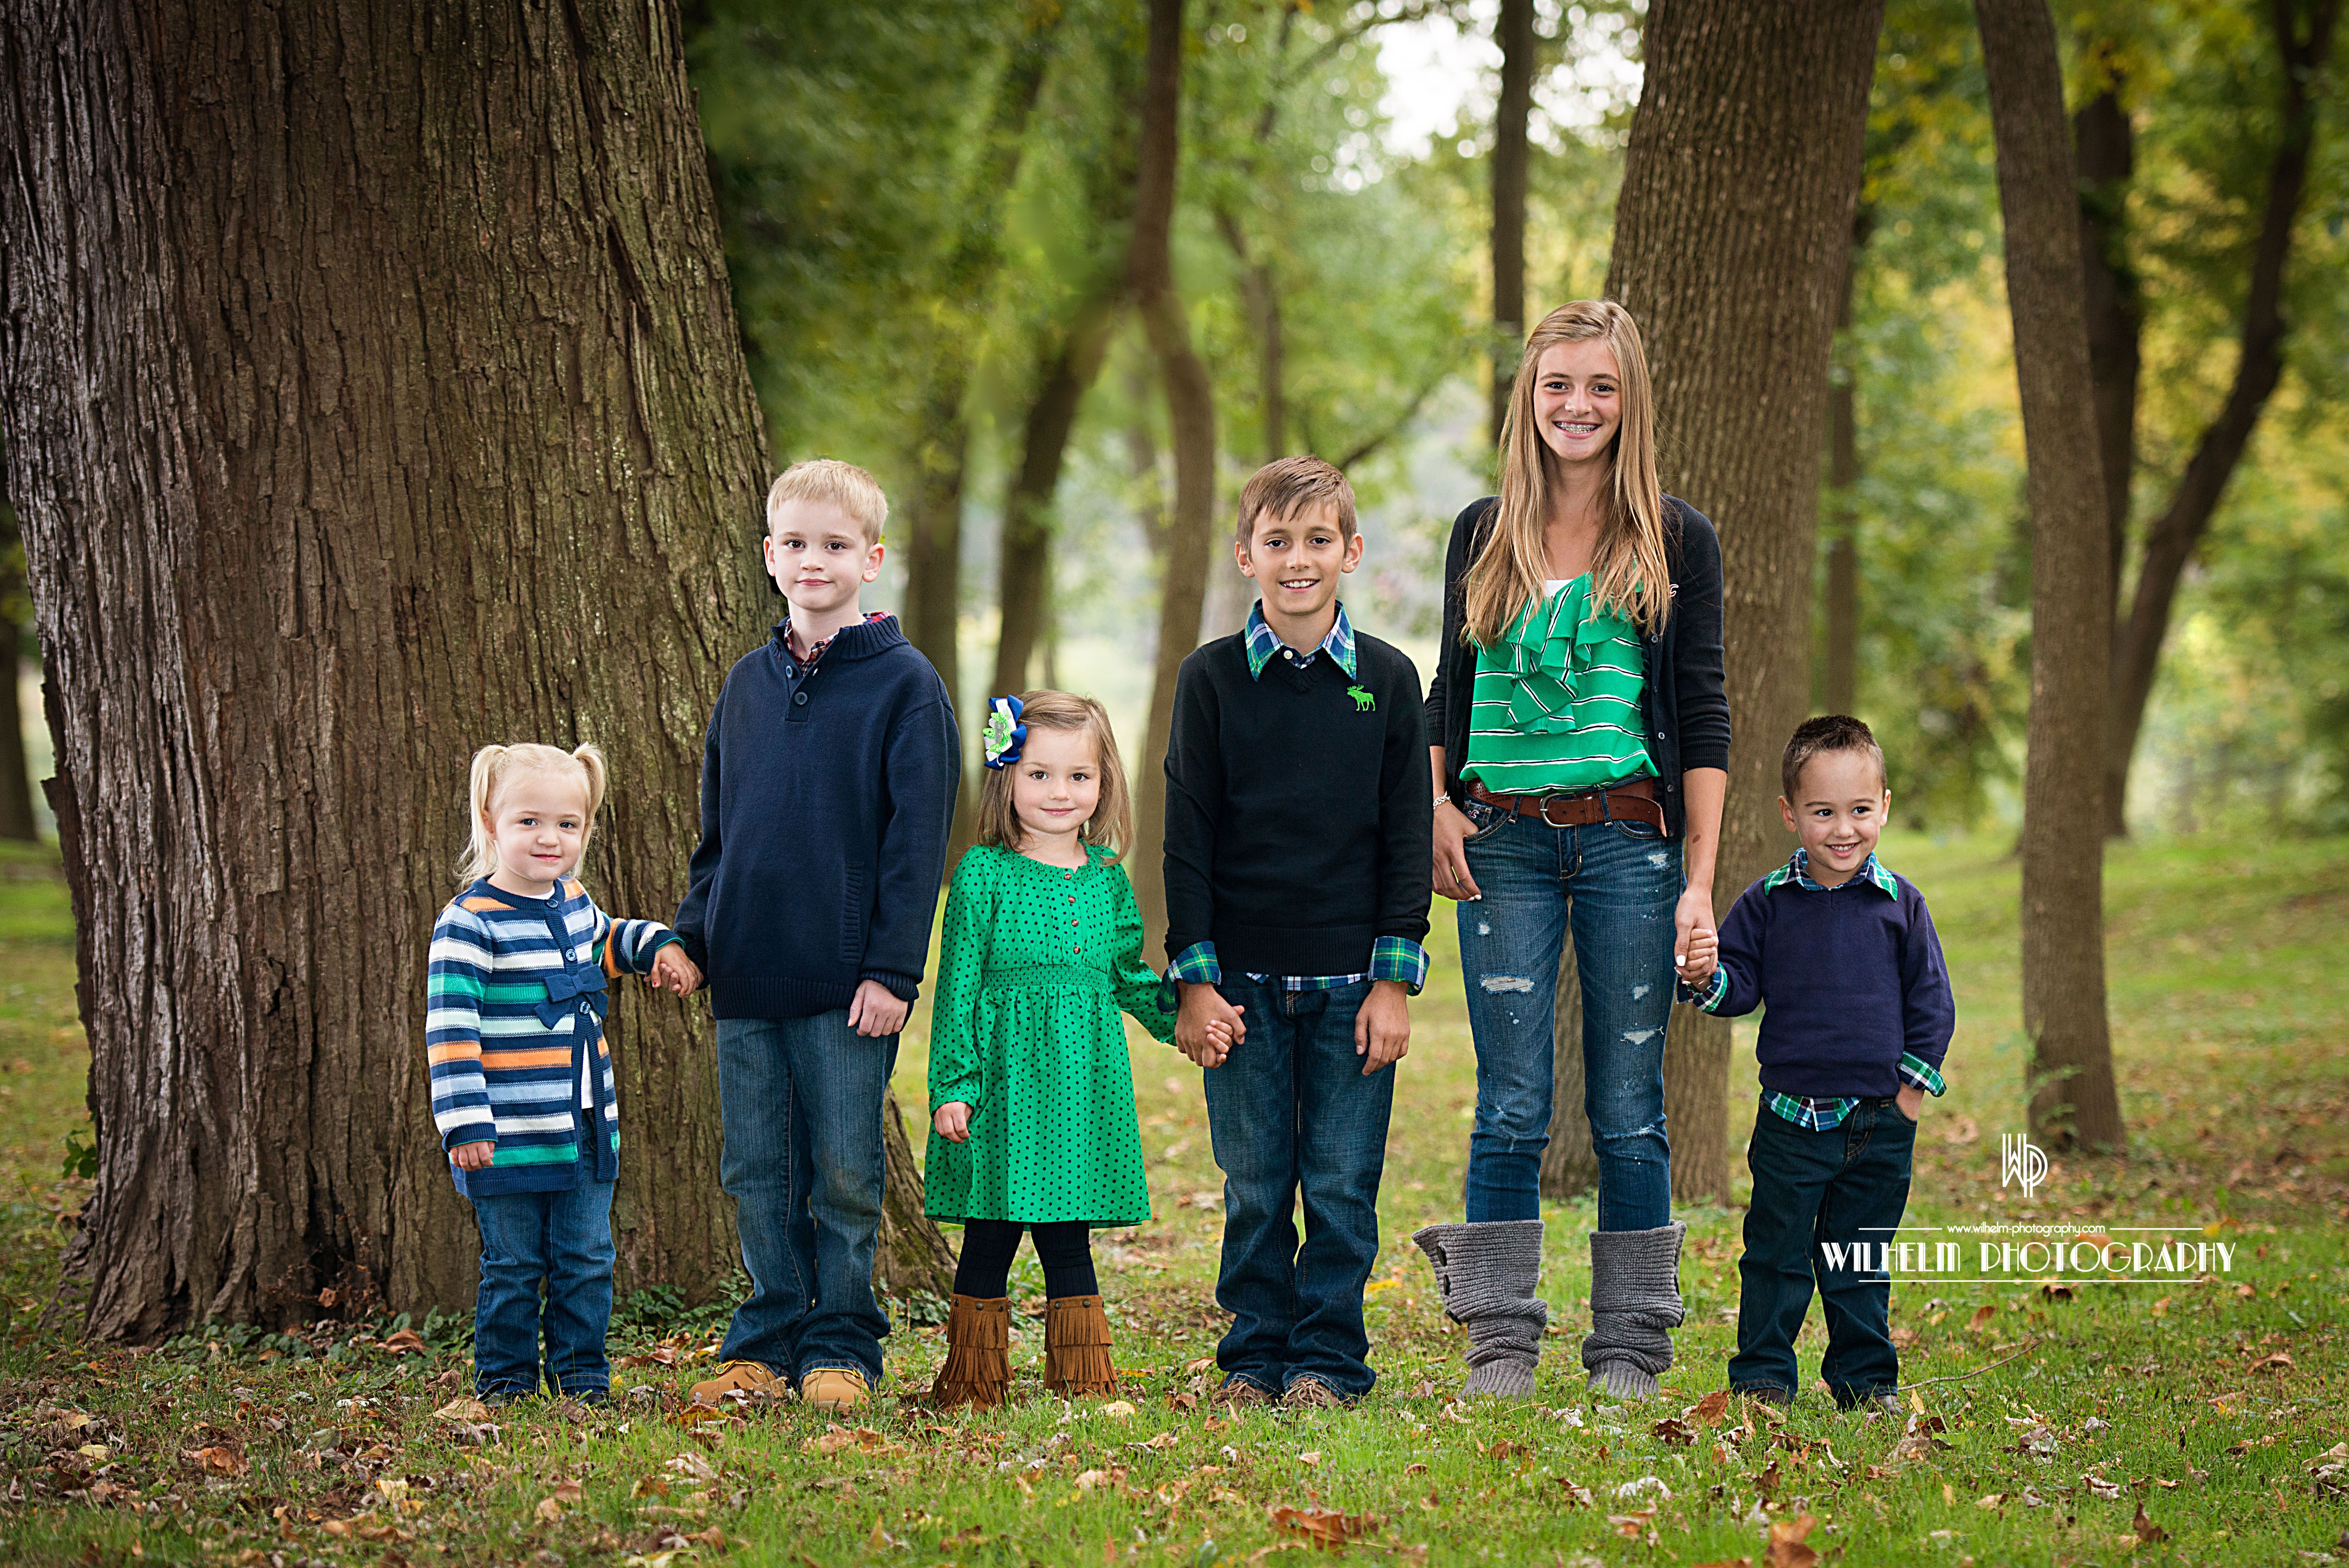 Christmas Colors For Family Pictures